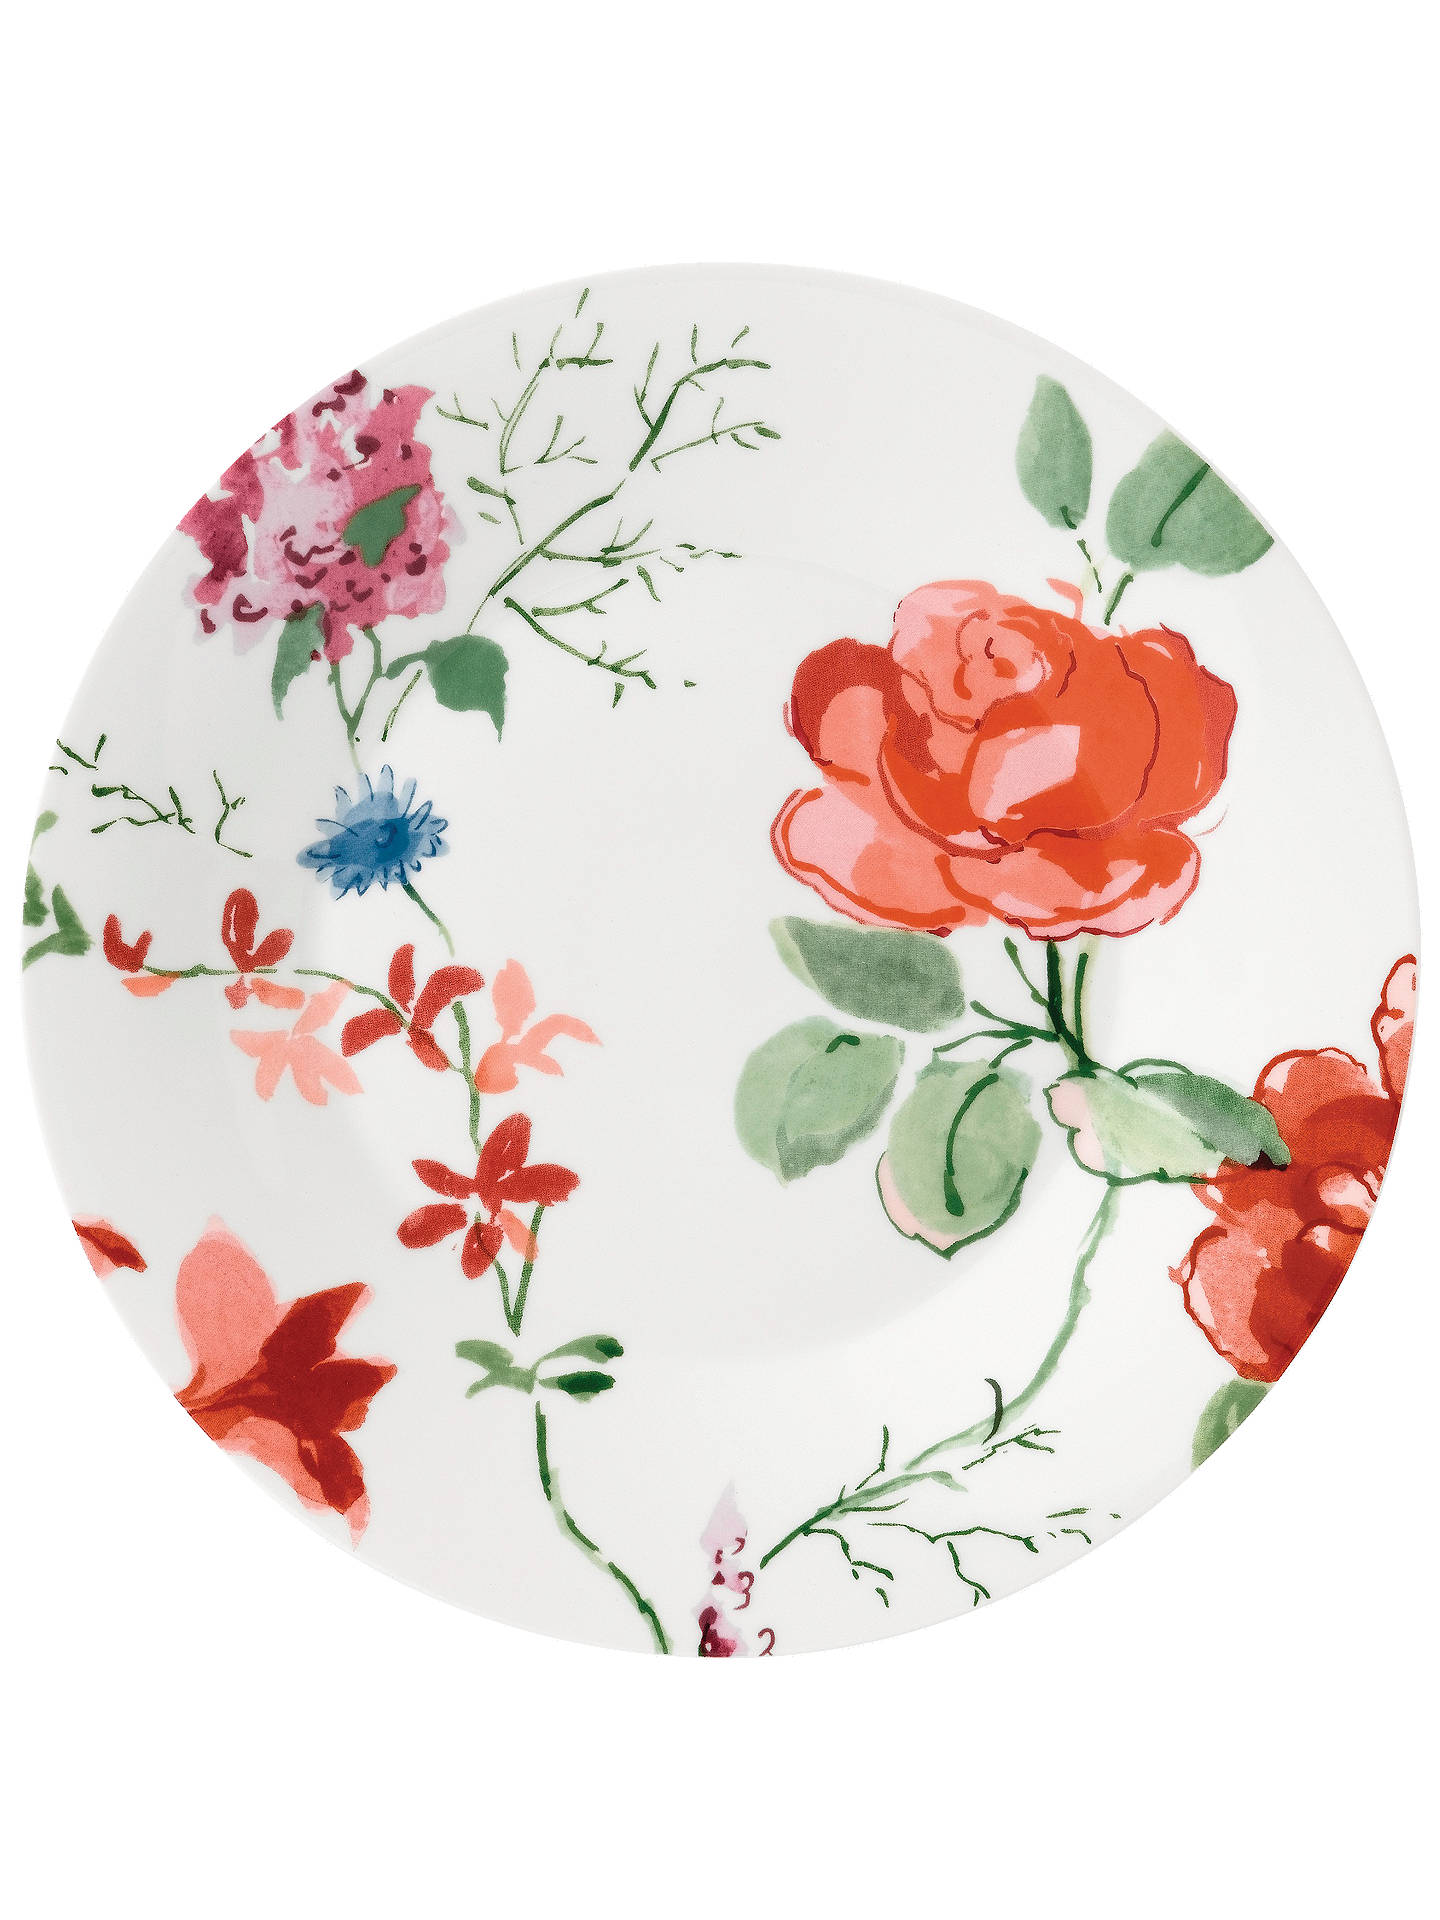 NEW Wedgwood PAINTED GARDEN 23cm Plates